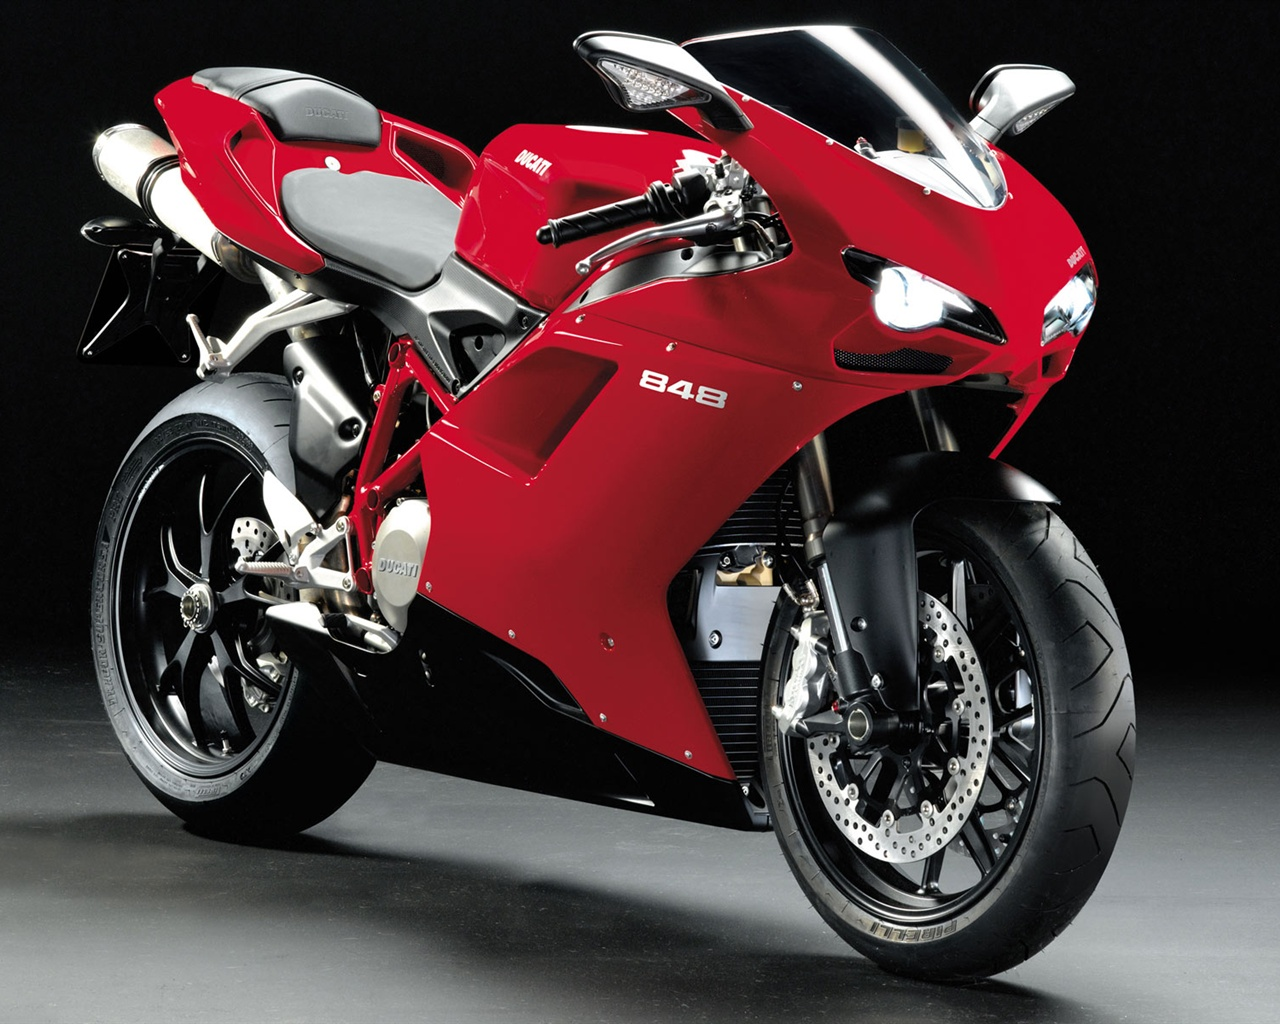 wallpaper ducati 848 motorcycle 1920x1200 hd picture, image